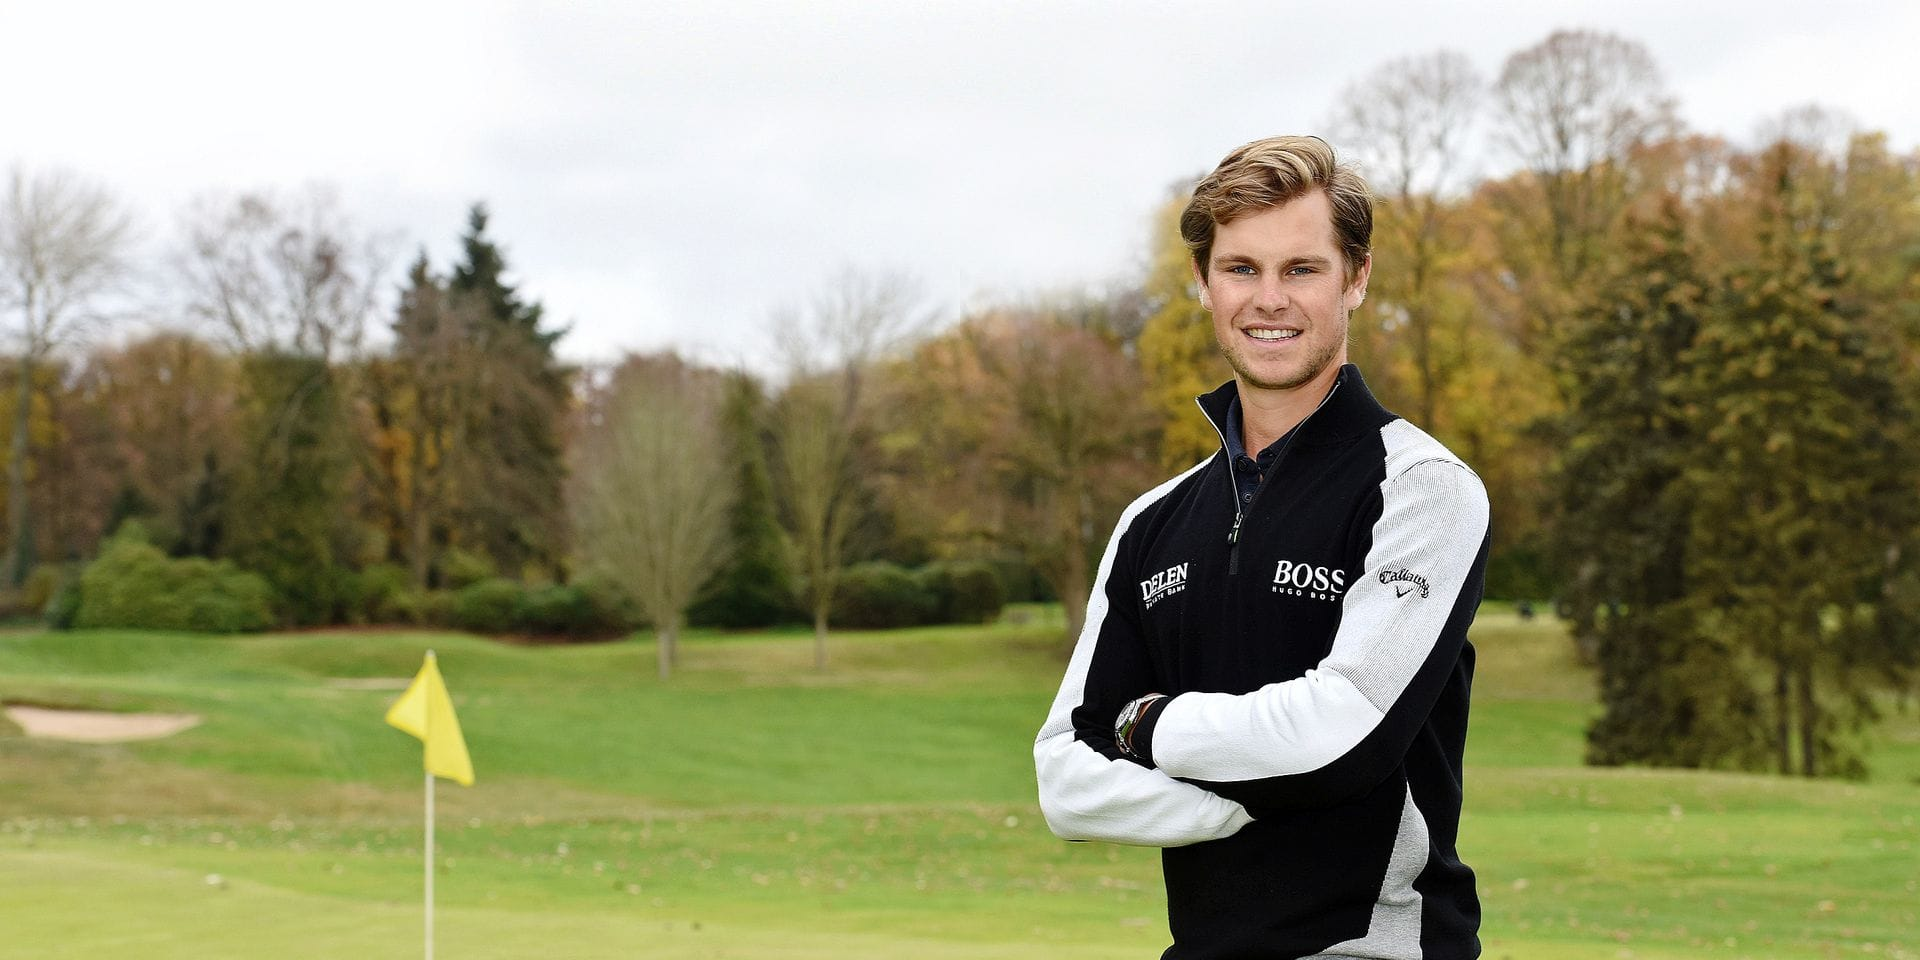 Belgian Thomas Detry poses for the photographer at a press moment with Belgian golfer Detry, at the 'Ravenstein' Royal Belgian Golf Club, in Tervuren, Friday 30 November 2018. Detry and Pieters won the 'World Cup of Golf in Australia, last weekend. BELGA PHOTO JEAN-LUC FLEMAL